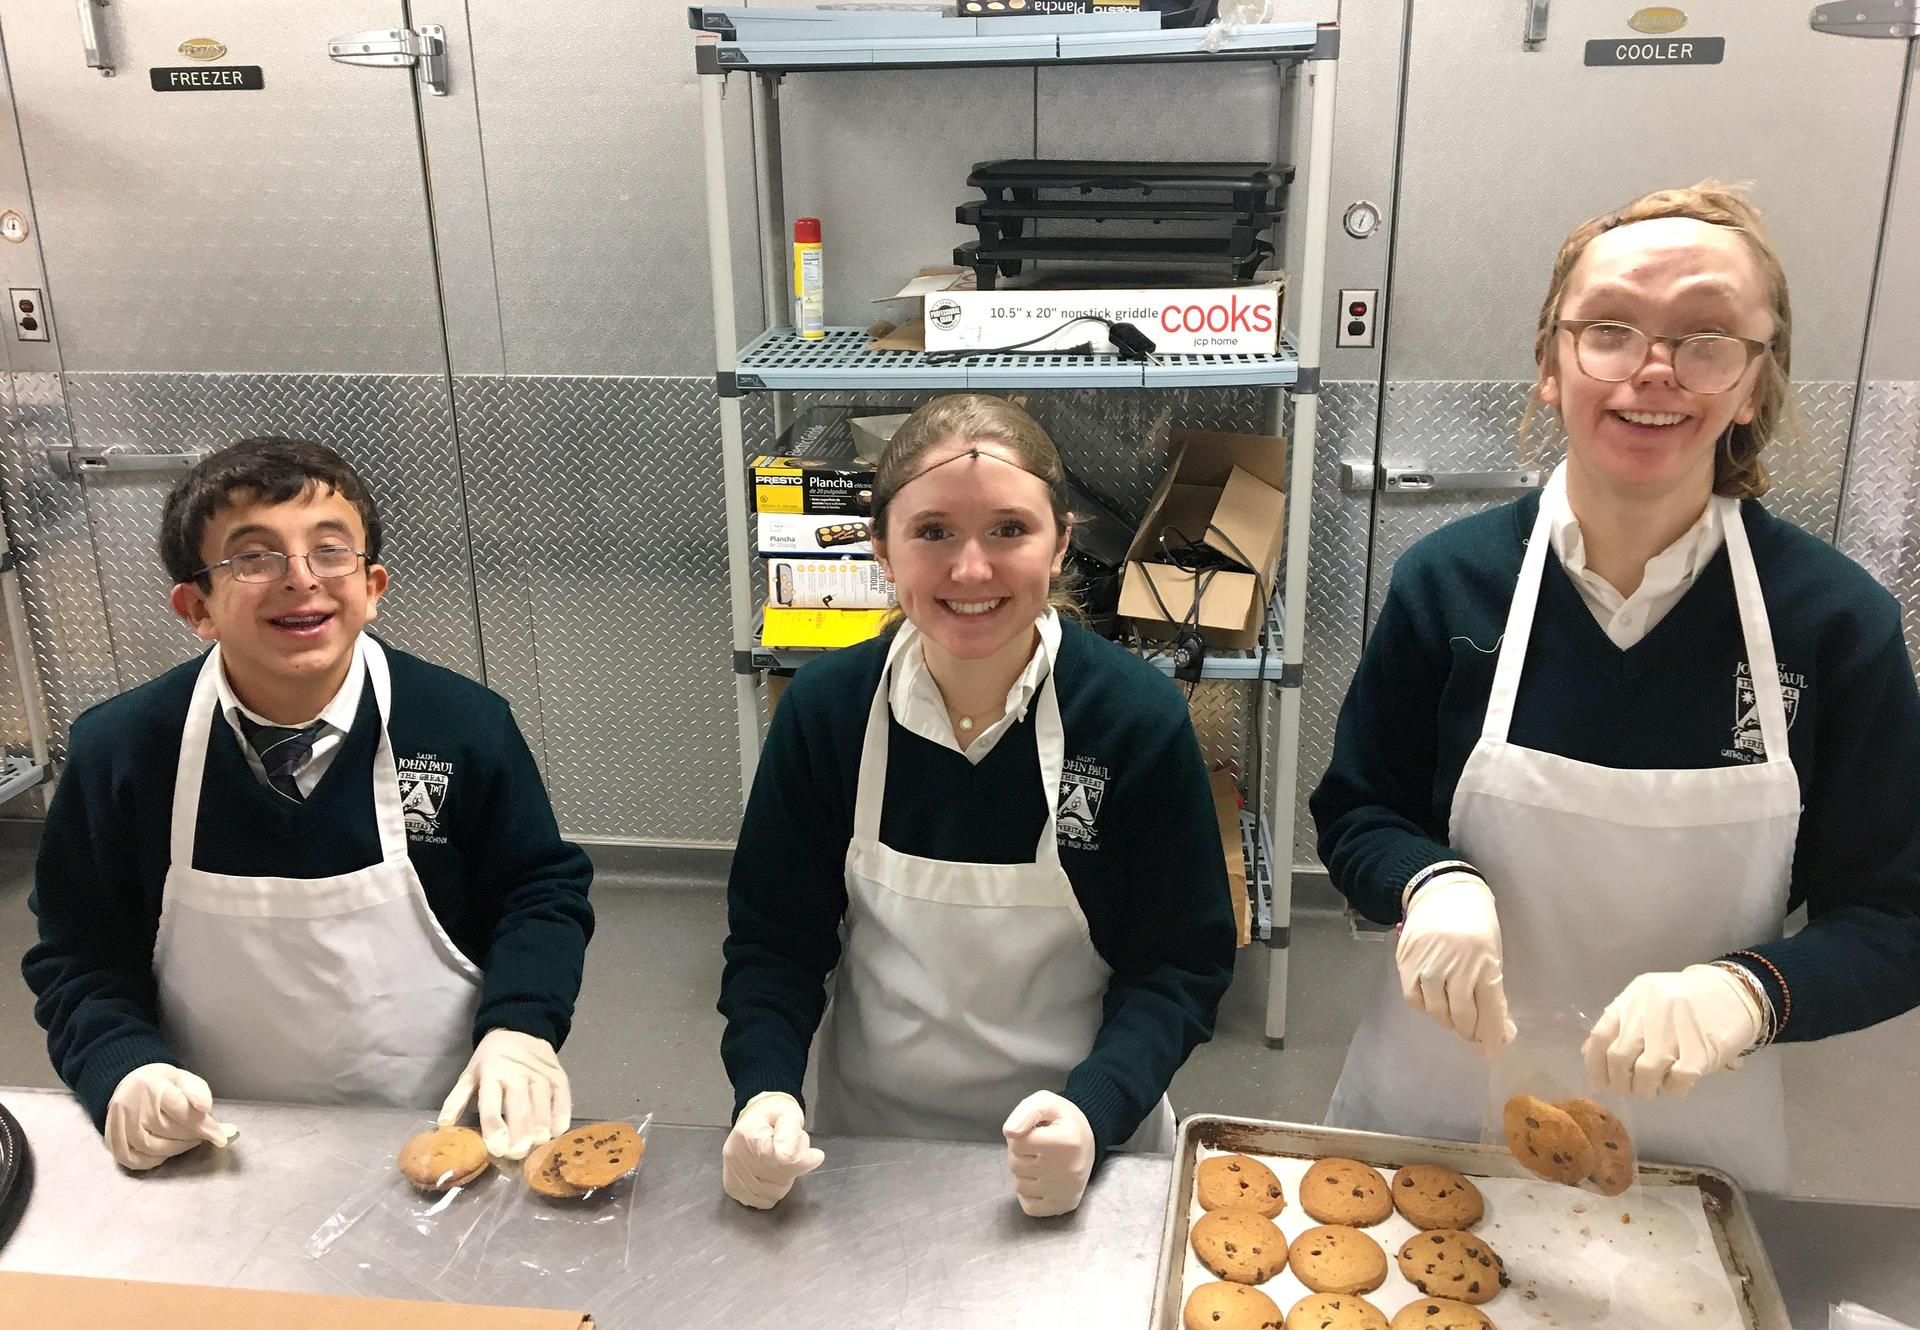 Options students cooking in the kitchen